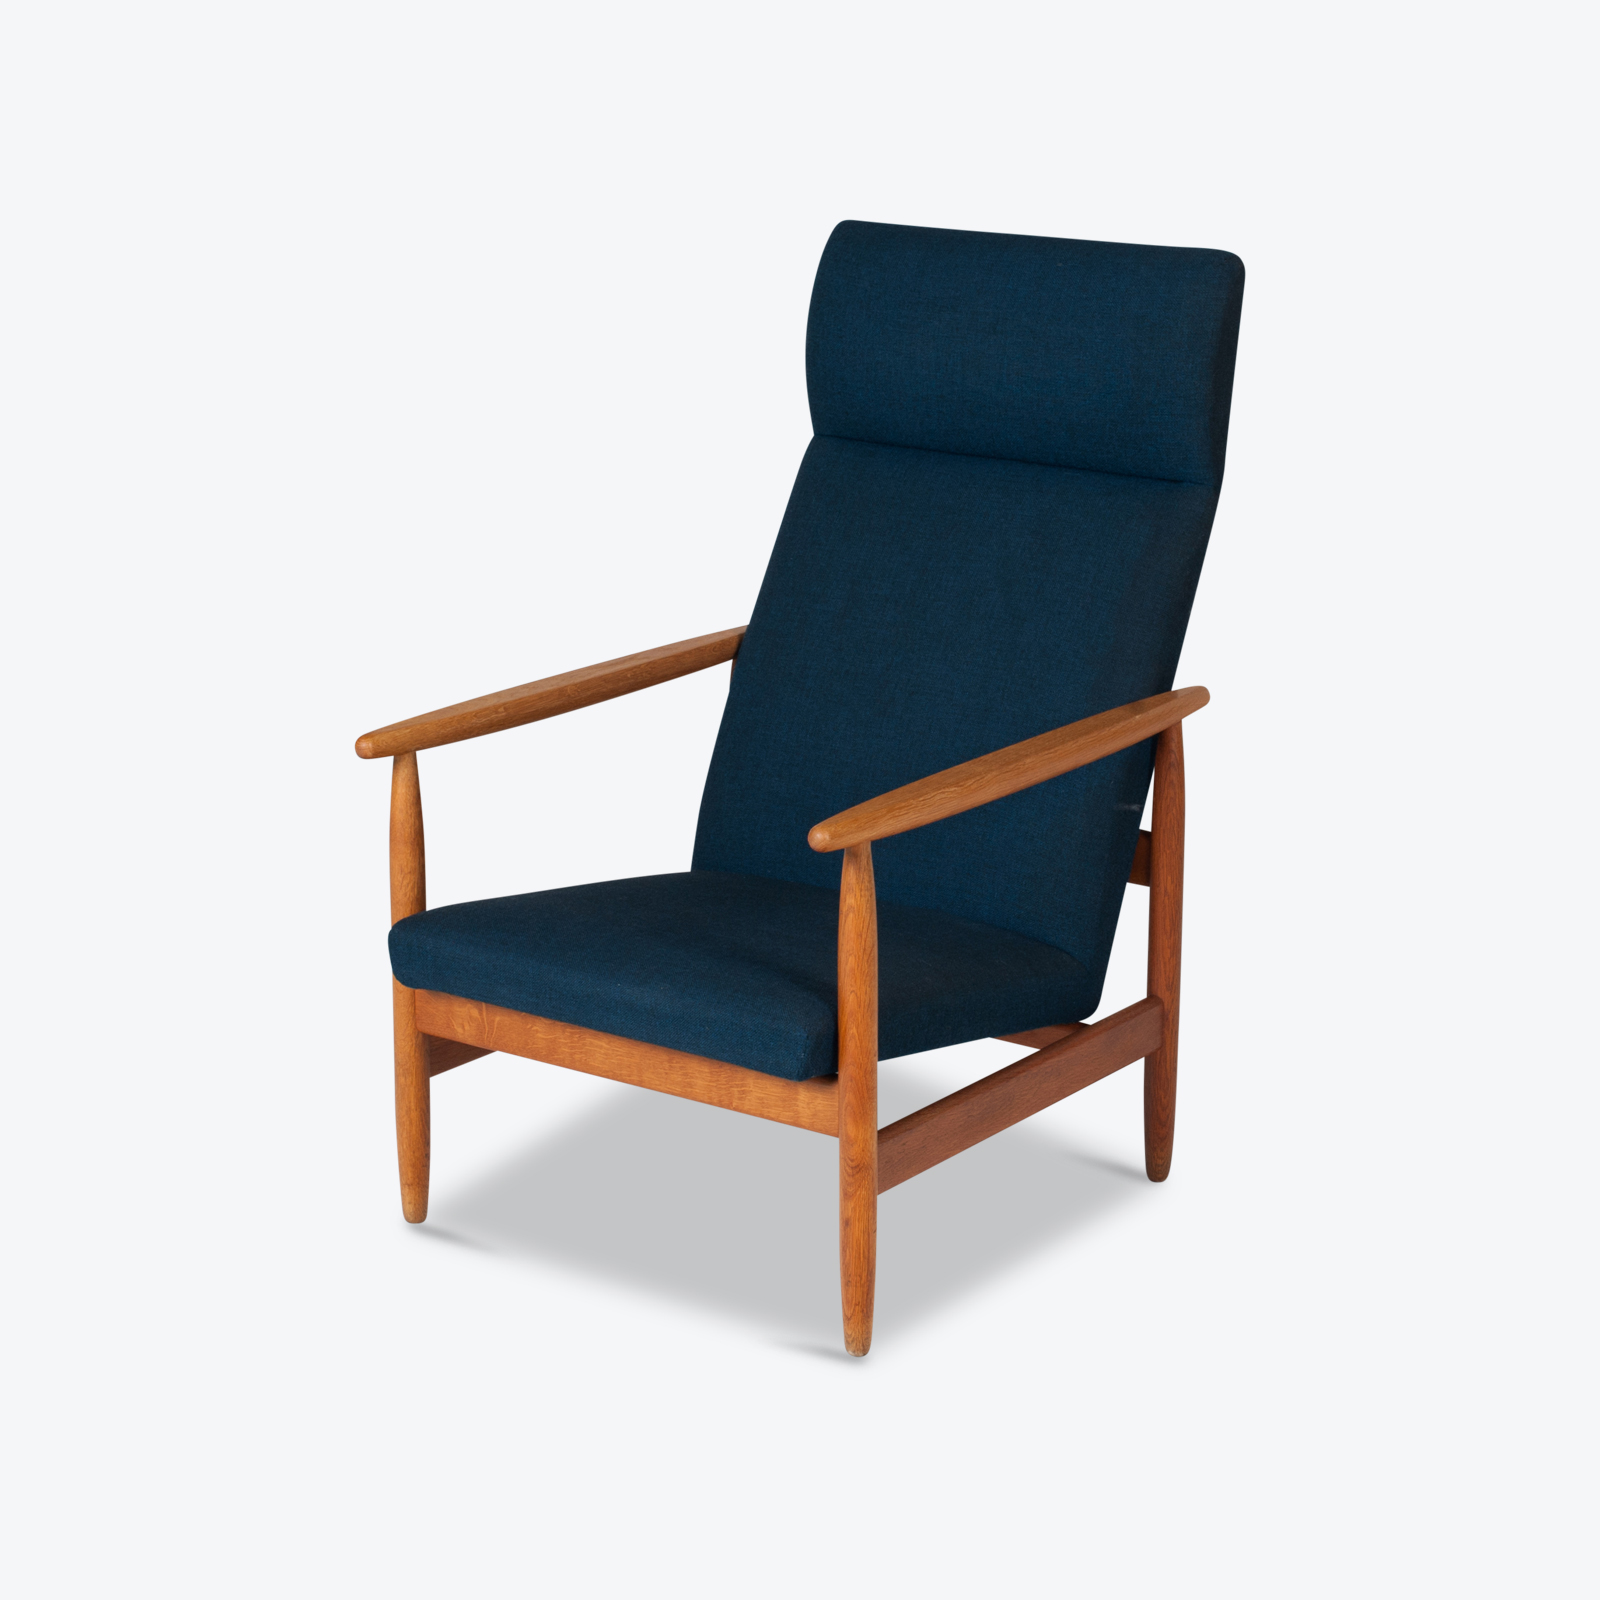 Armchair By Ejvind A. Johansson In Blue Upholstery, 1960s, Denmark Hero